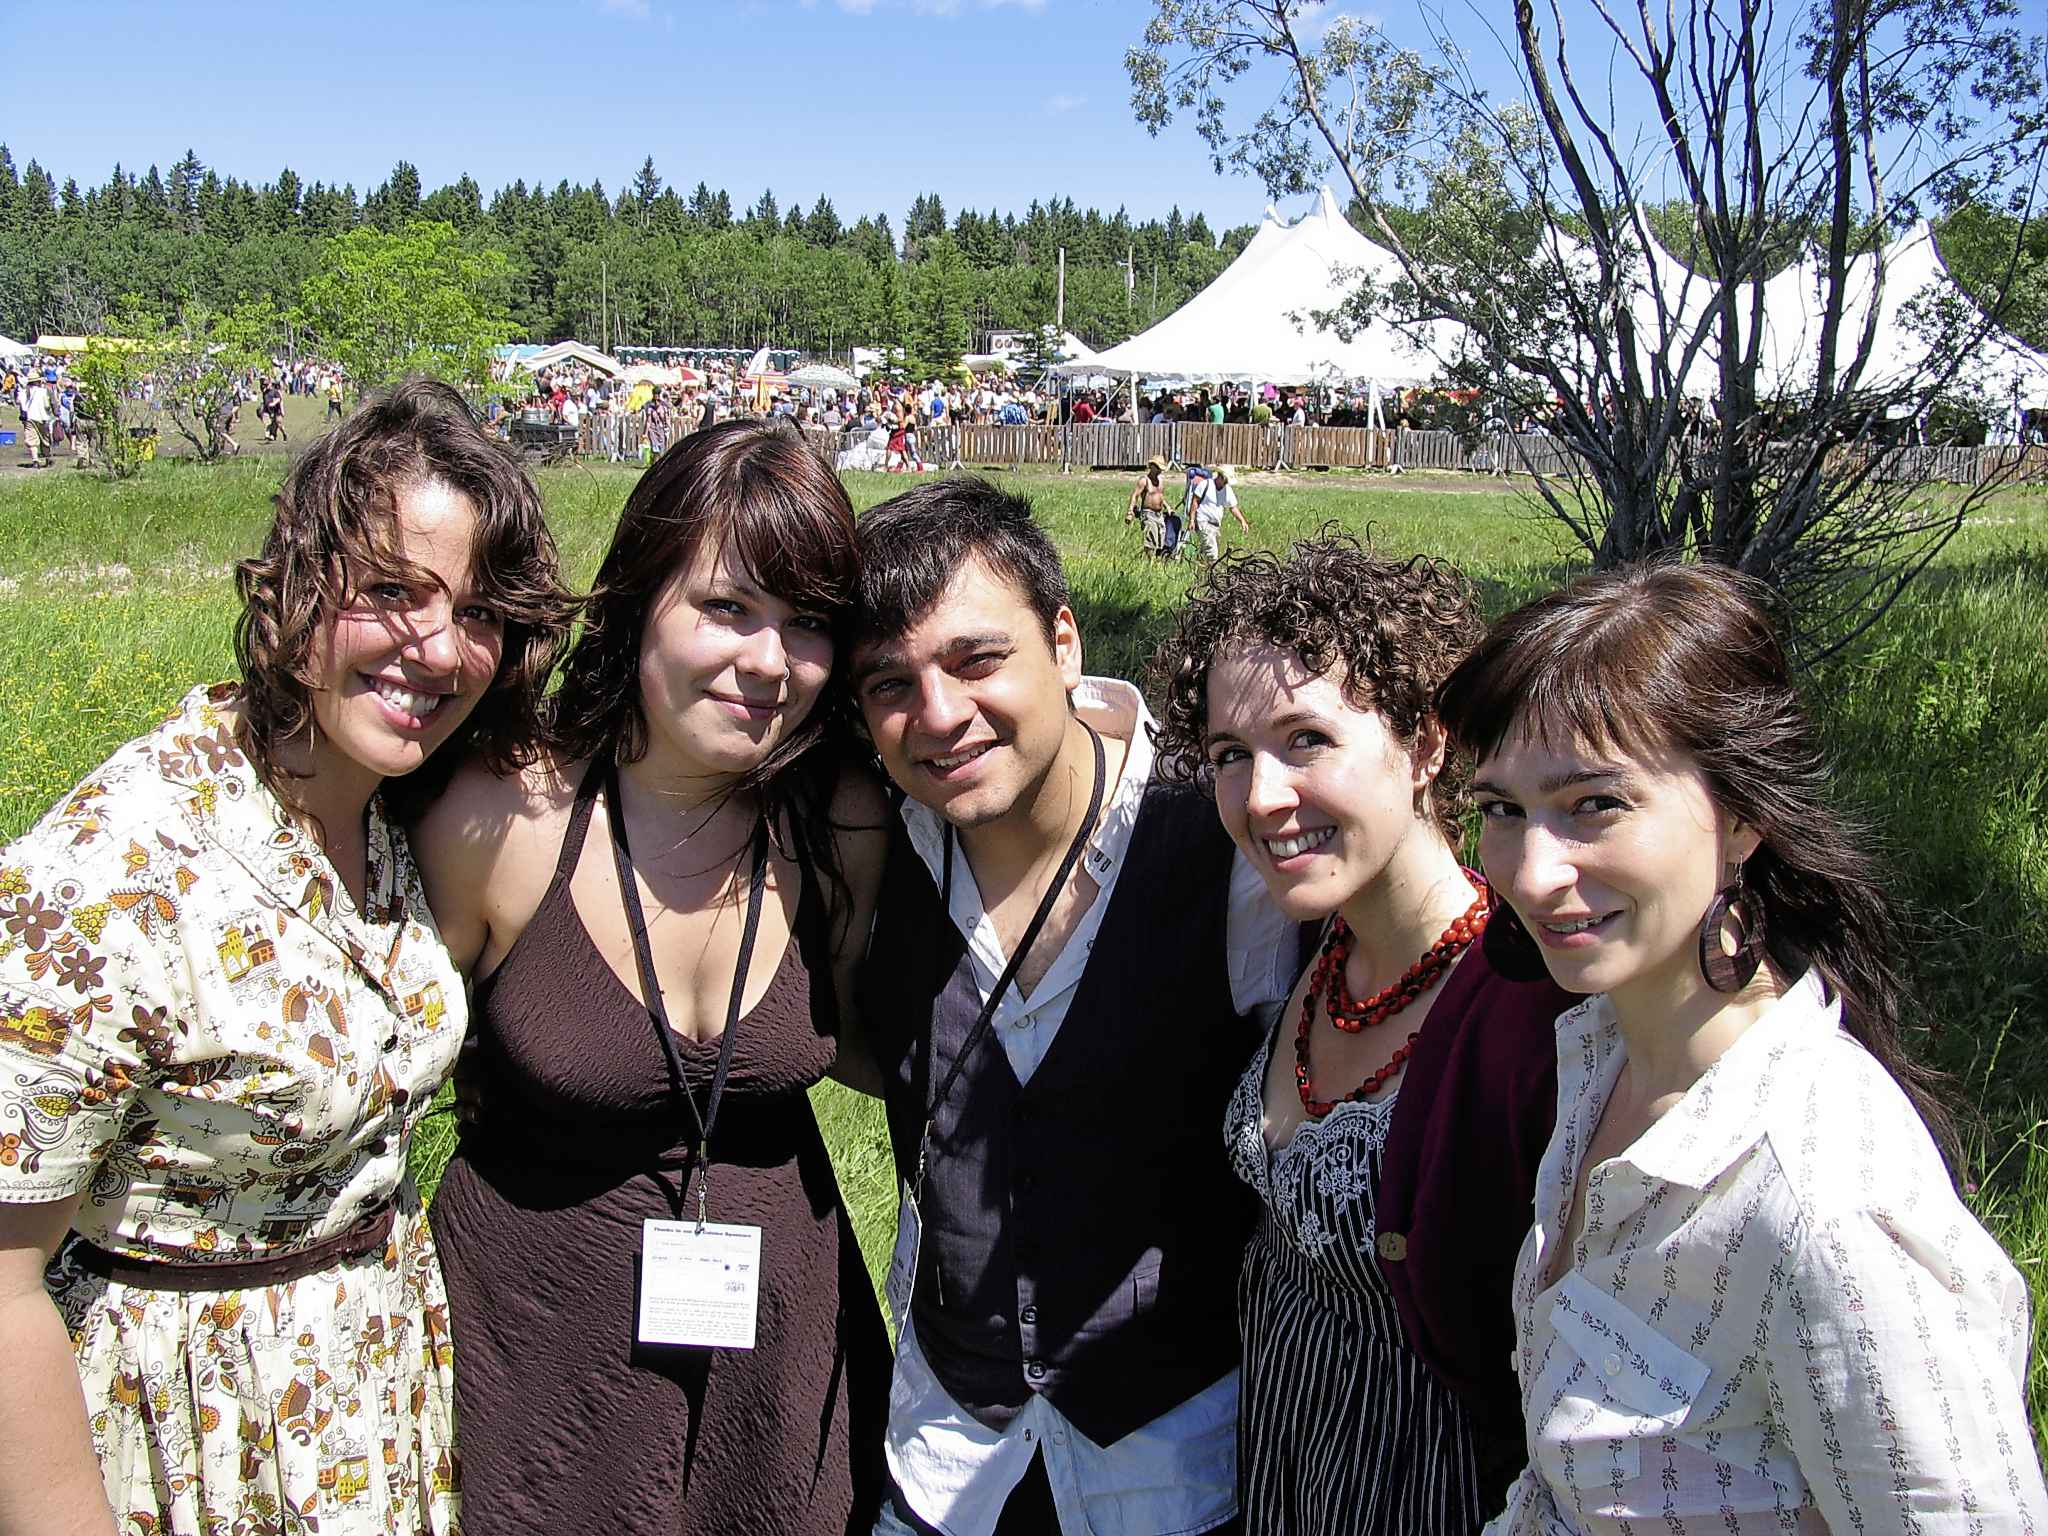 SUPPLIED</p><p>Chic Gamine at Winnipeg Folk Festival 2008, (from left) Andrina Turenne, Alexa Dirks, Sacha Daoud, Ariane Jean, and Annick Bremault.</p>